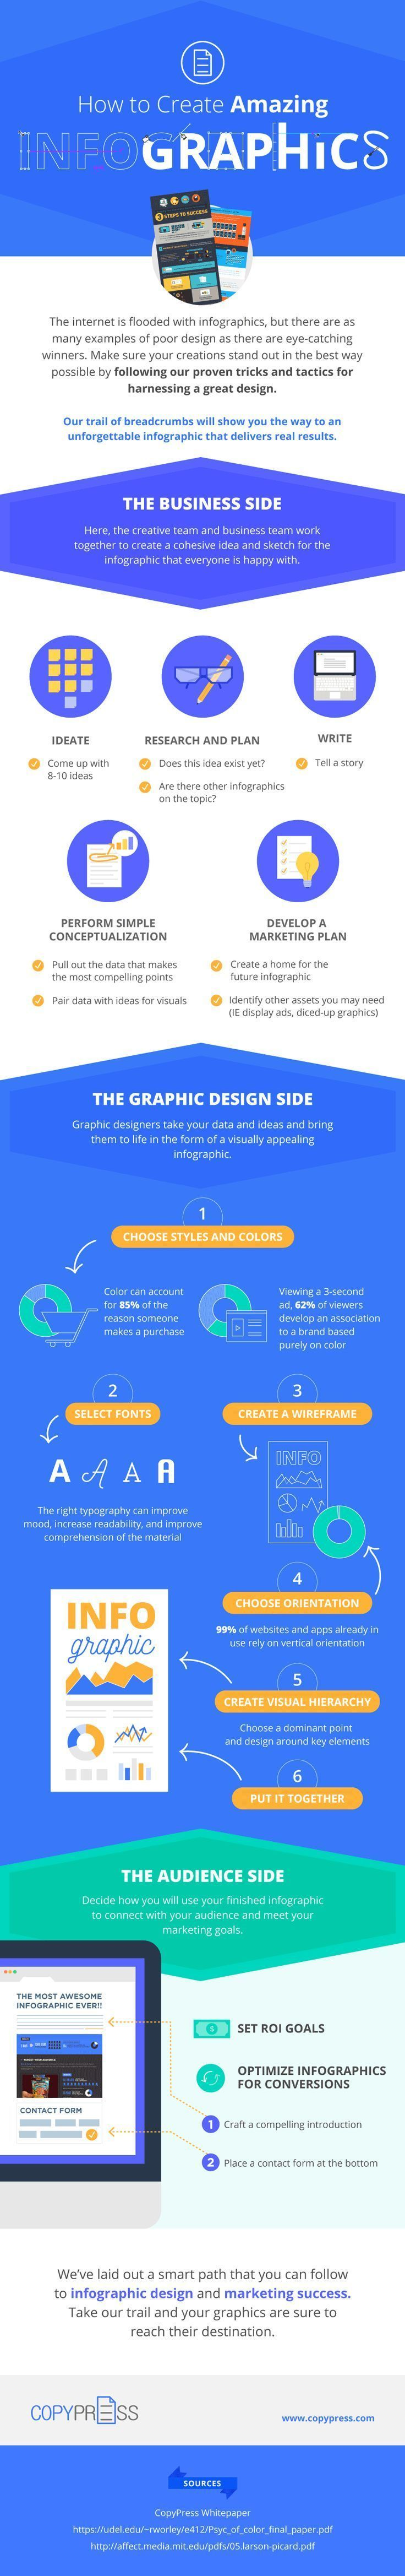 Marketing-Infographic-Wondering-how-to-create-an-infographic-Does-it-seem-complex-and-intimidating-H Marketing Infographic : Wondering how to create an infographic? Does it seem complex and intimidating? H...